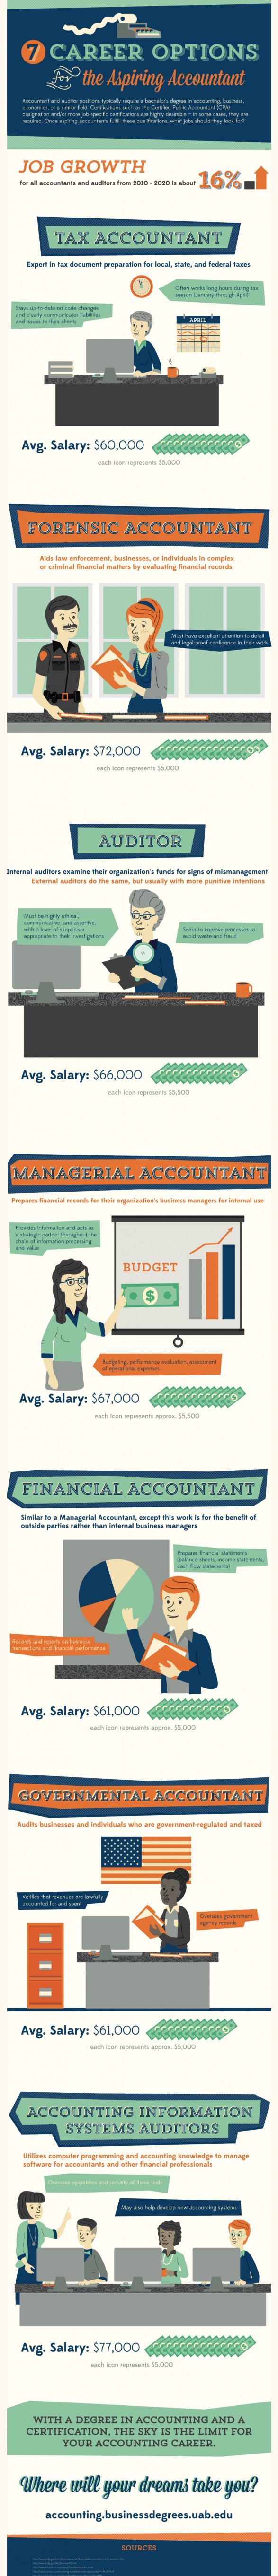 cool career paths in accounting home page photo of accountant courtesy of shutterstock infographic courtesy of the university of alabama at birmingham